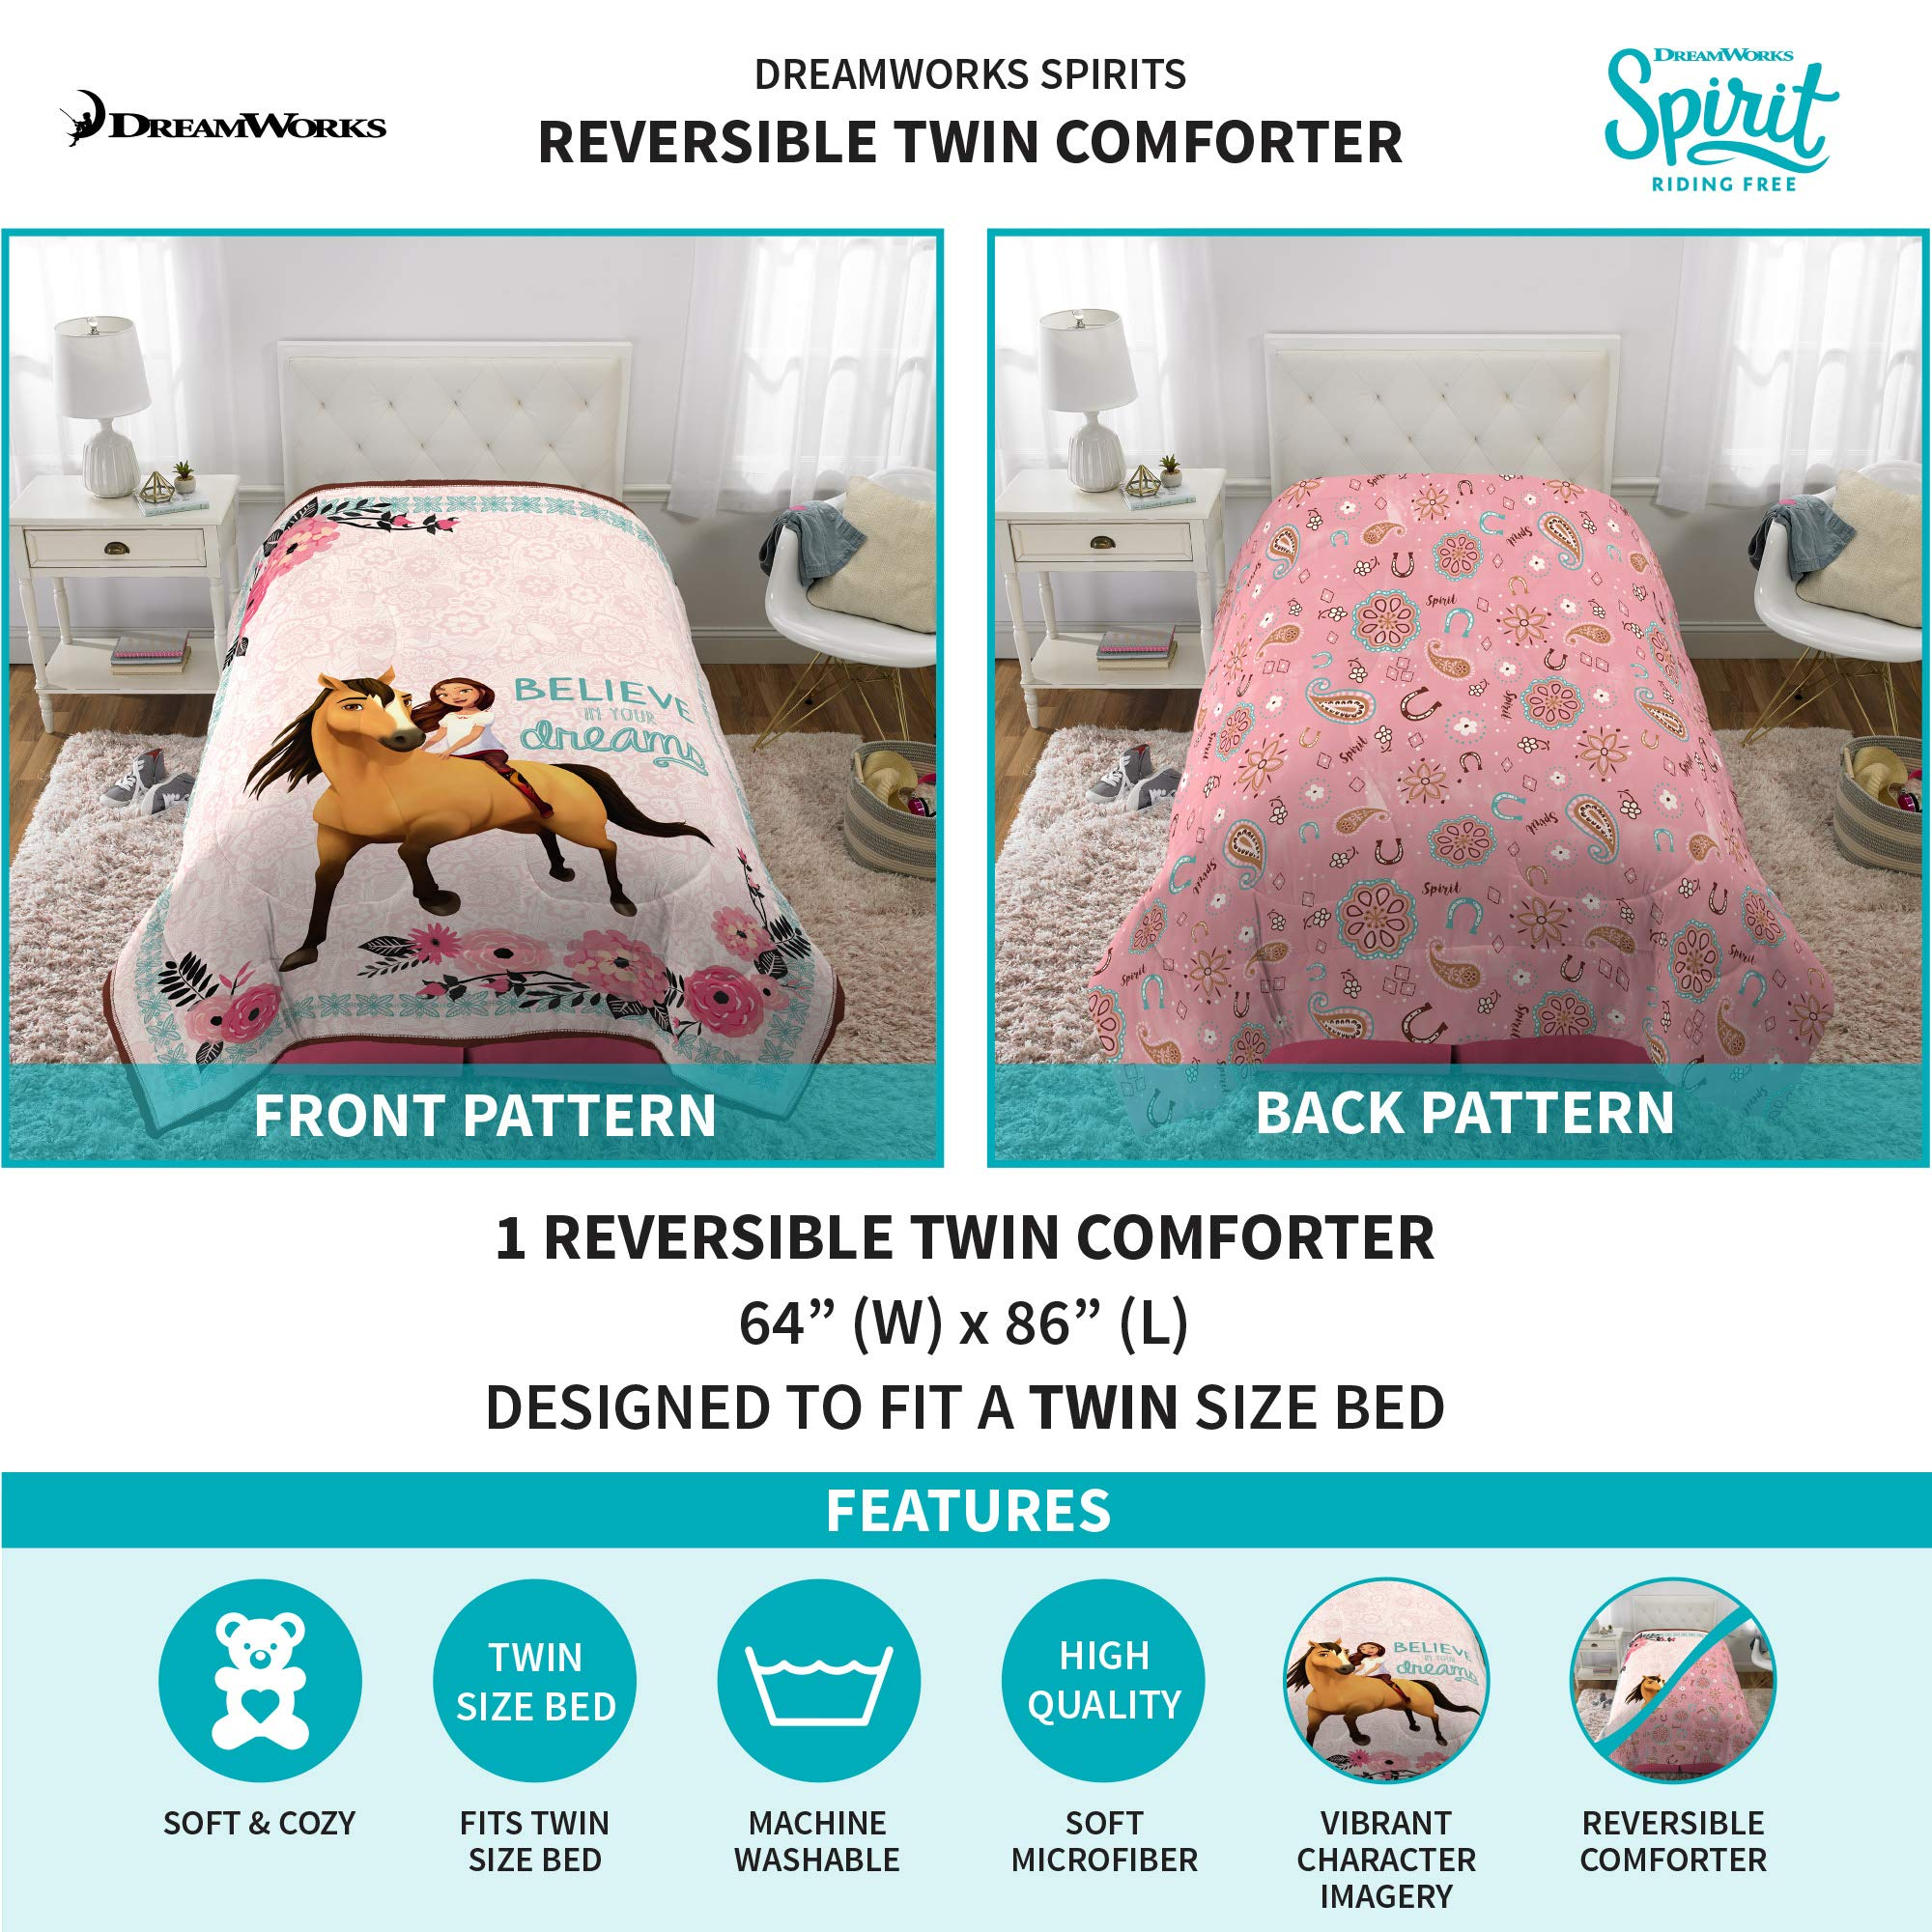 Dreamworks Spirit Riding Free Kids Bedding Soft Microfiber Reversible Comforter, Twin Size 64'' x 86'', White/Pink by Dreamworks (Image #2)